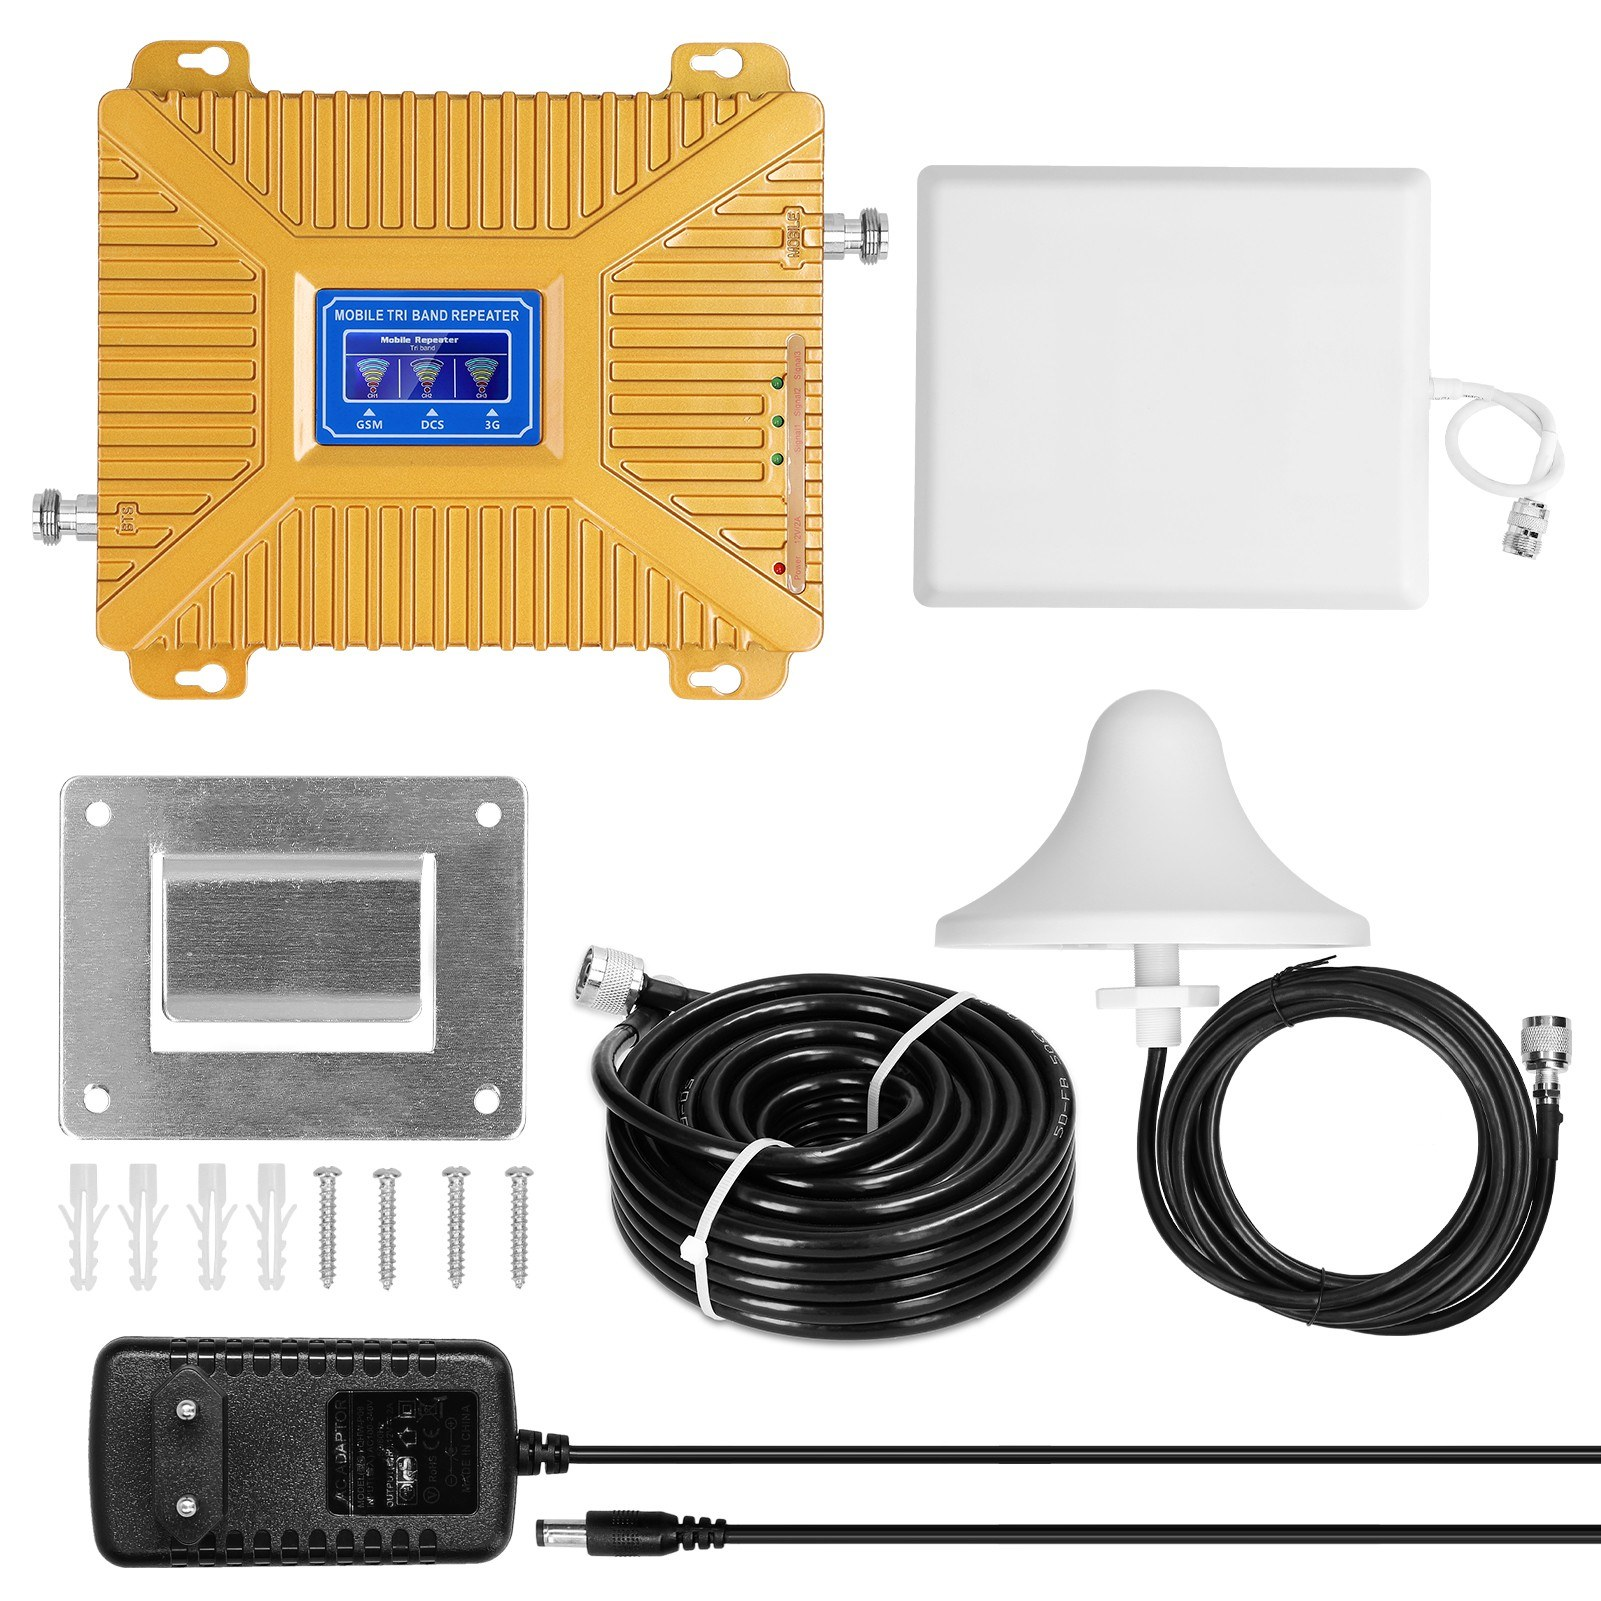 Tomtop - [EU Warehouse] 50% OFF Universal Signal Boosters Intelligent Repeaters Kit, $96.49 (Inclusive of VAT)